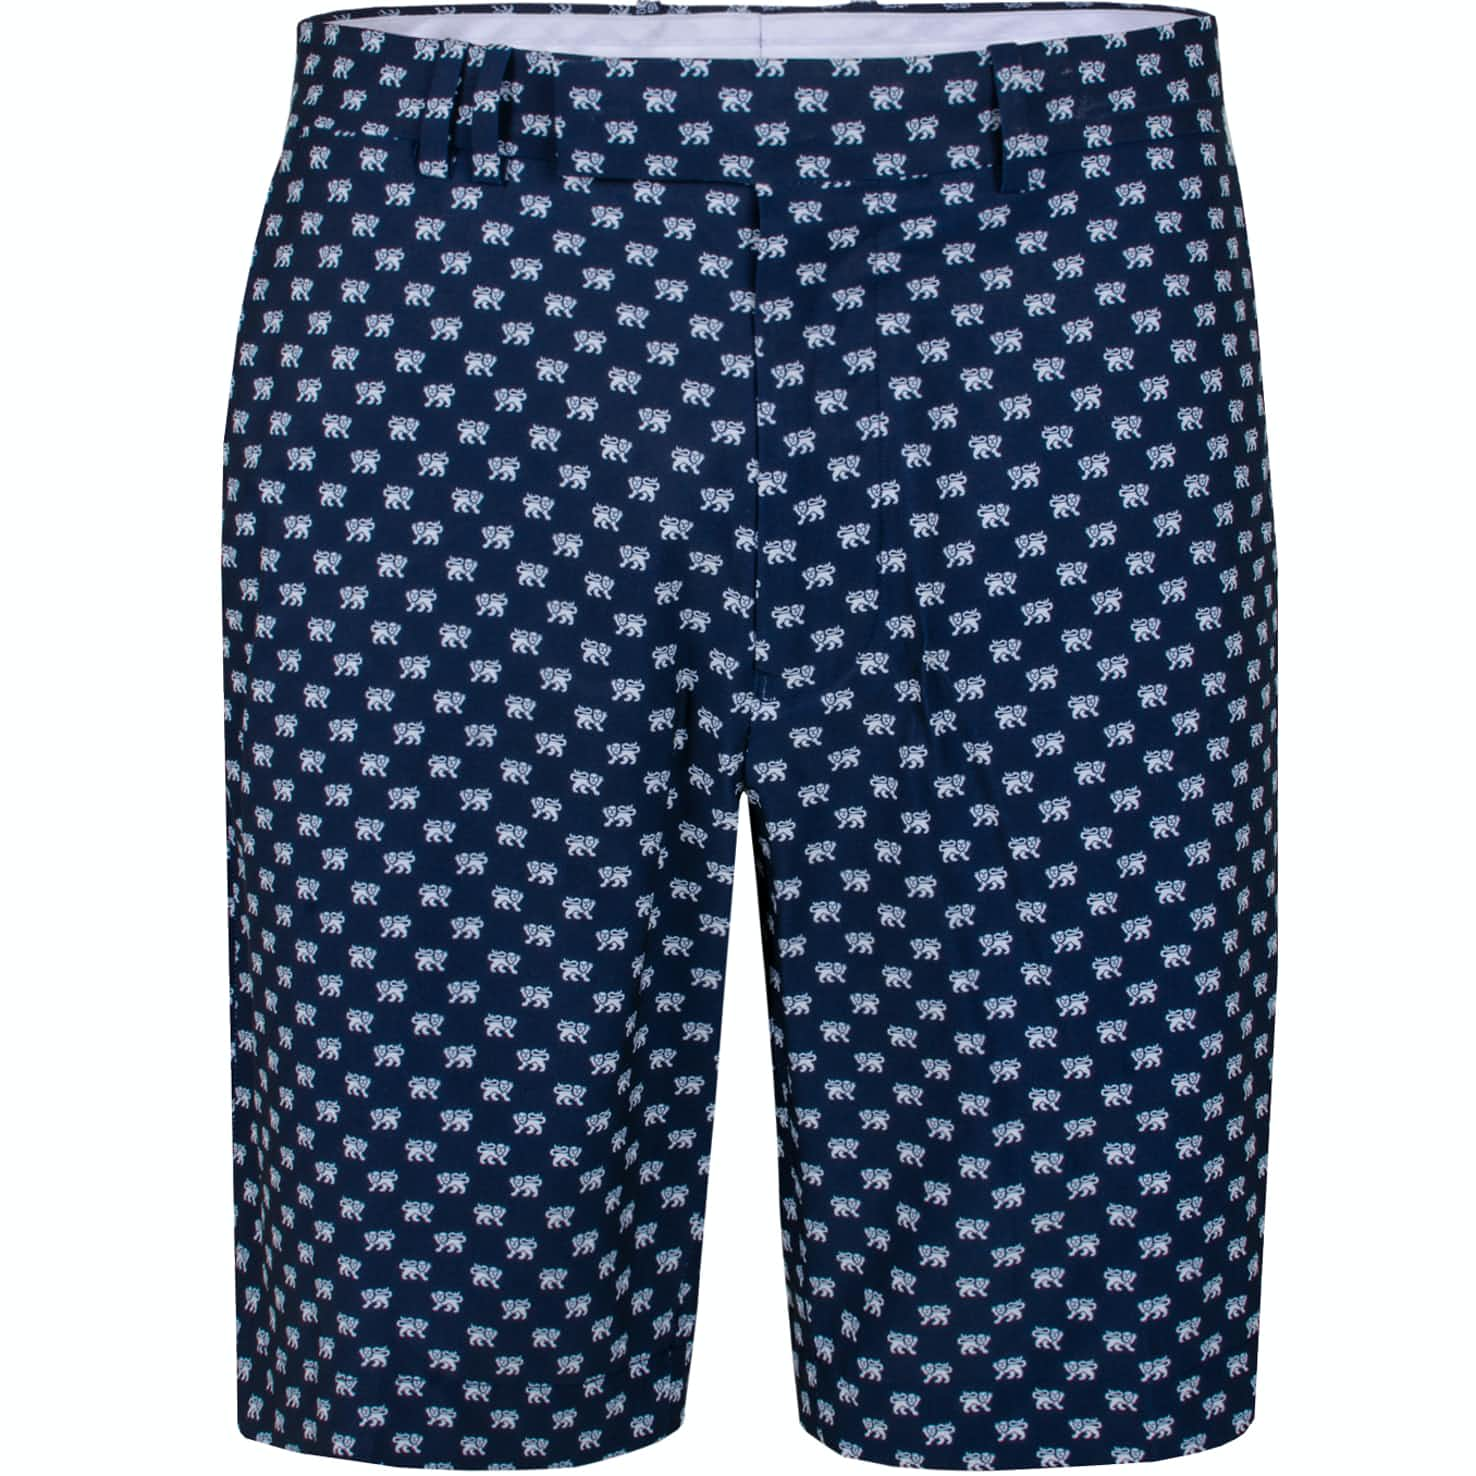 Athletic Stretch Shorts Ivy Mascot Print - AW19